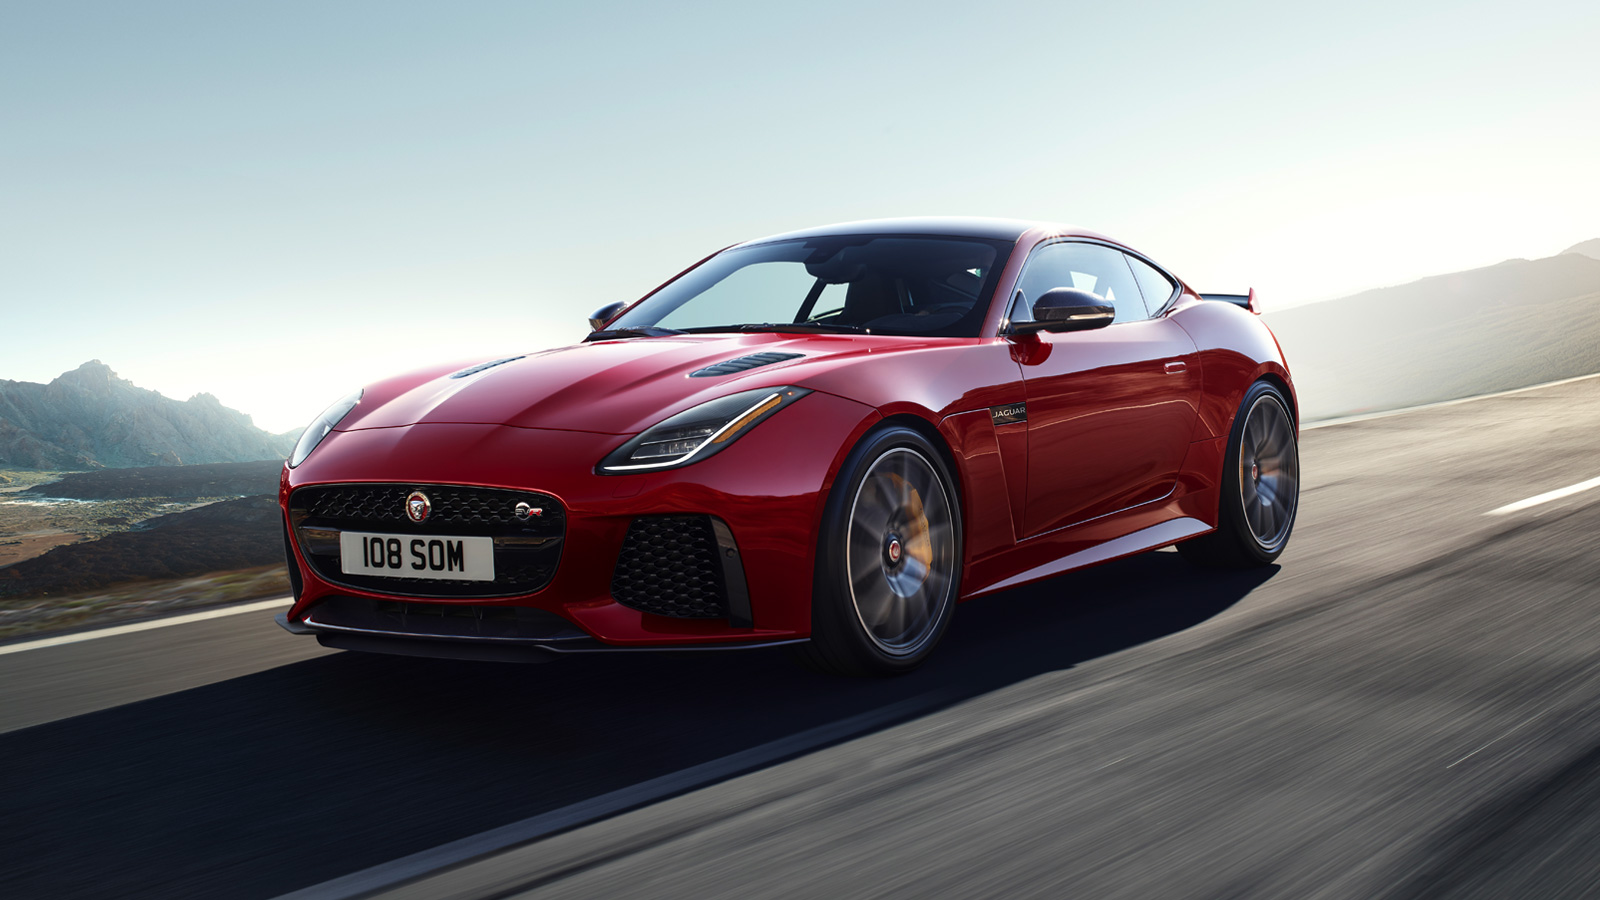 F-TYPE SVR in Caldera Red on Open Road